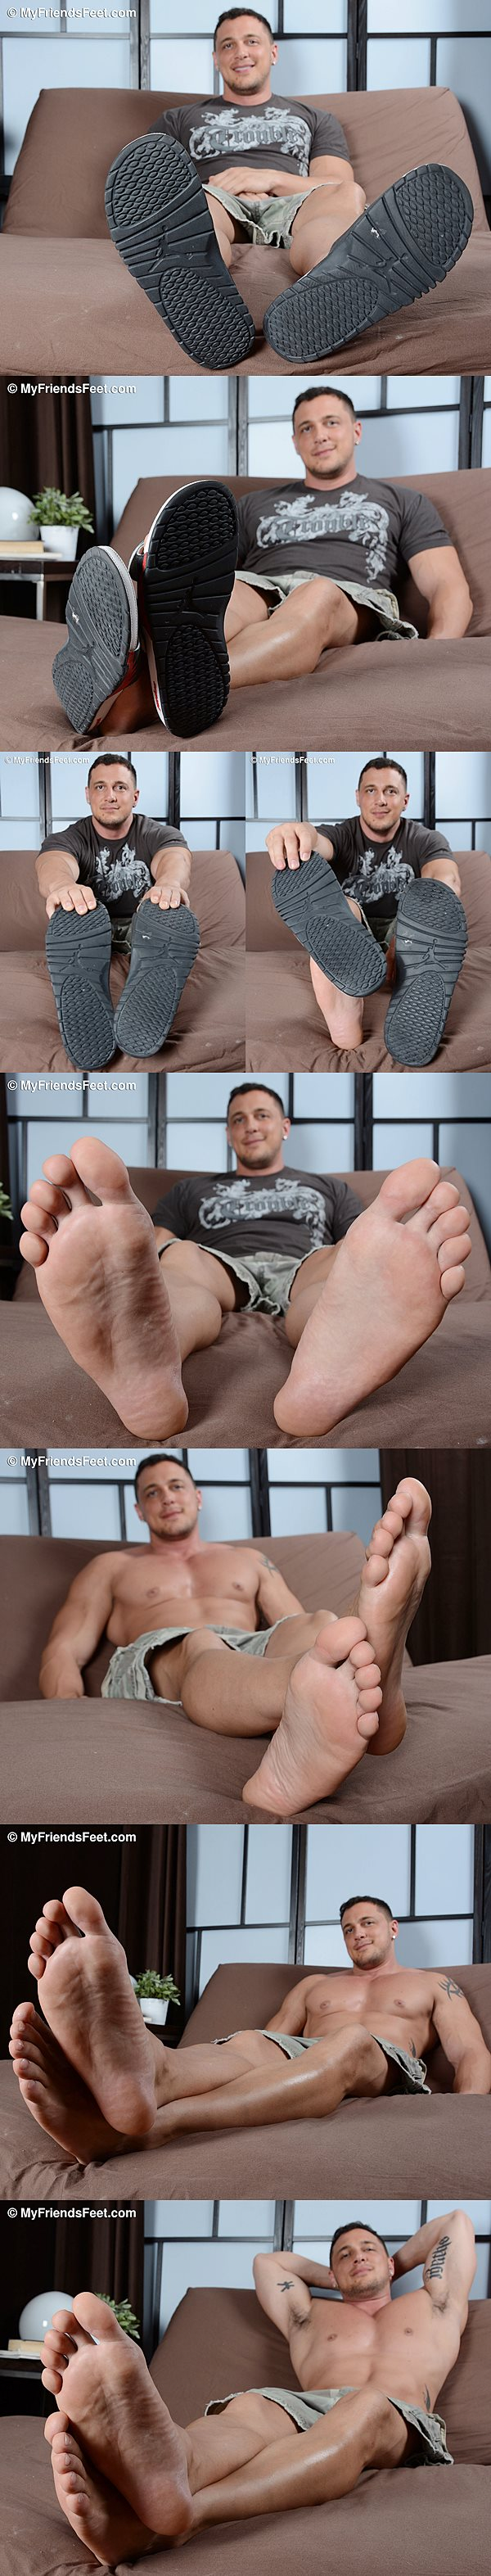 Hot muscle hunk Joey D shows off his sexy body and size 12 feet in Joey's Slides & Big Sexy Feet at Myfriendsfeet